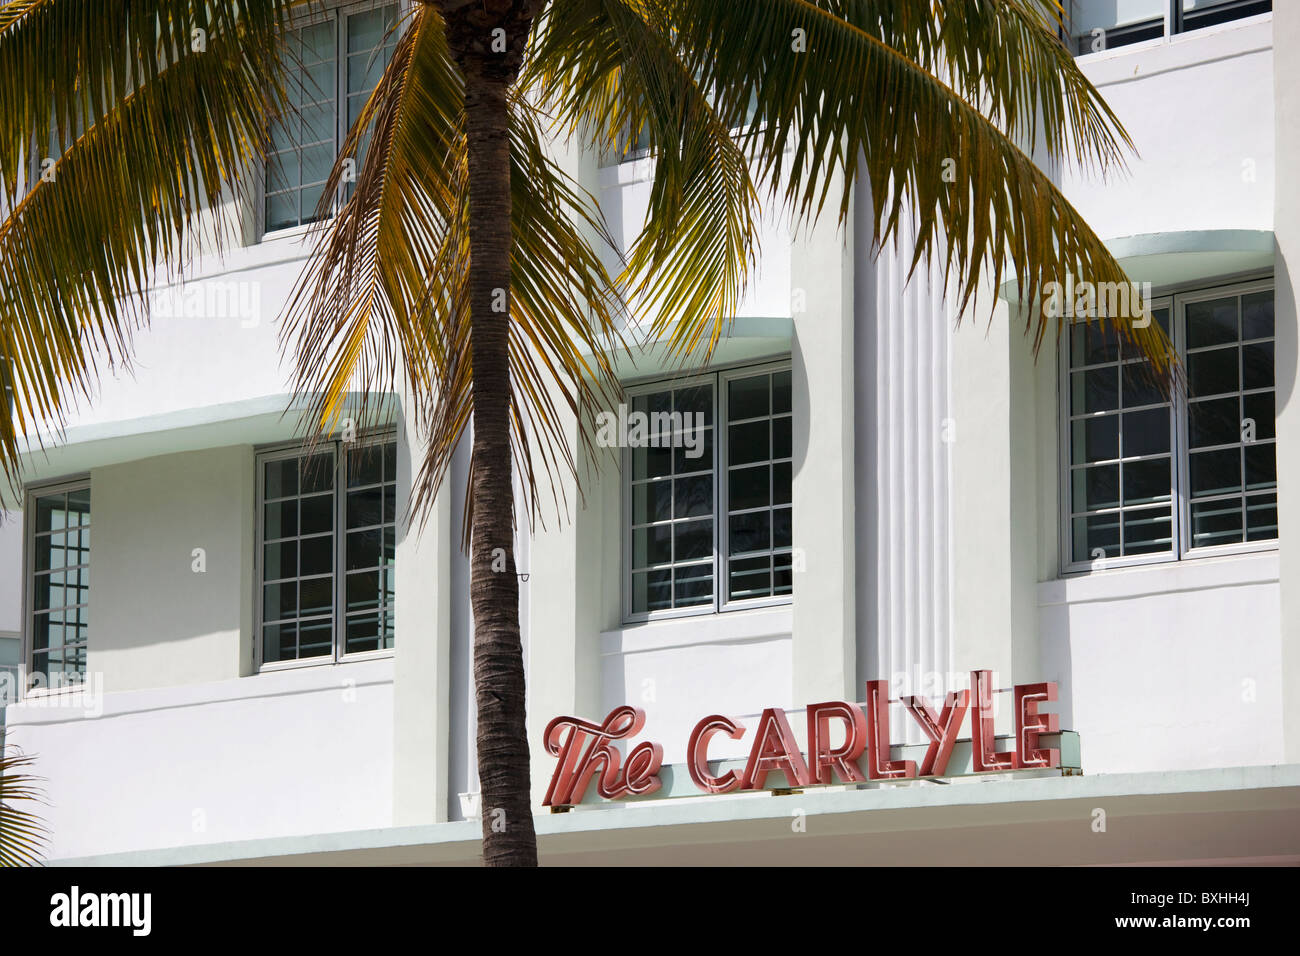 The Carlyle in South Beach Miami Luxury Condo Vacation Rental on Ocean Drive, South Beach, Miami, Florida, USA - Stock Image